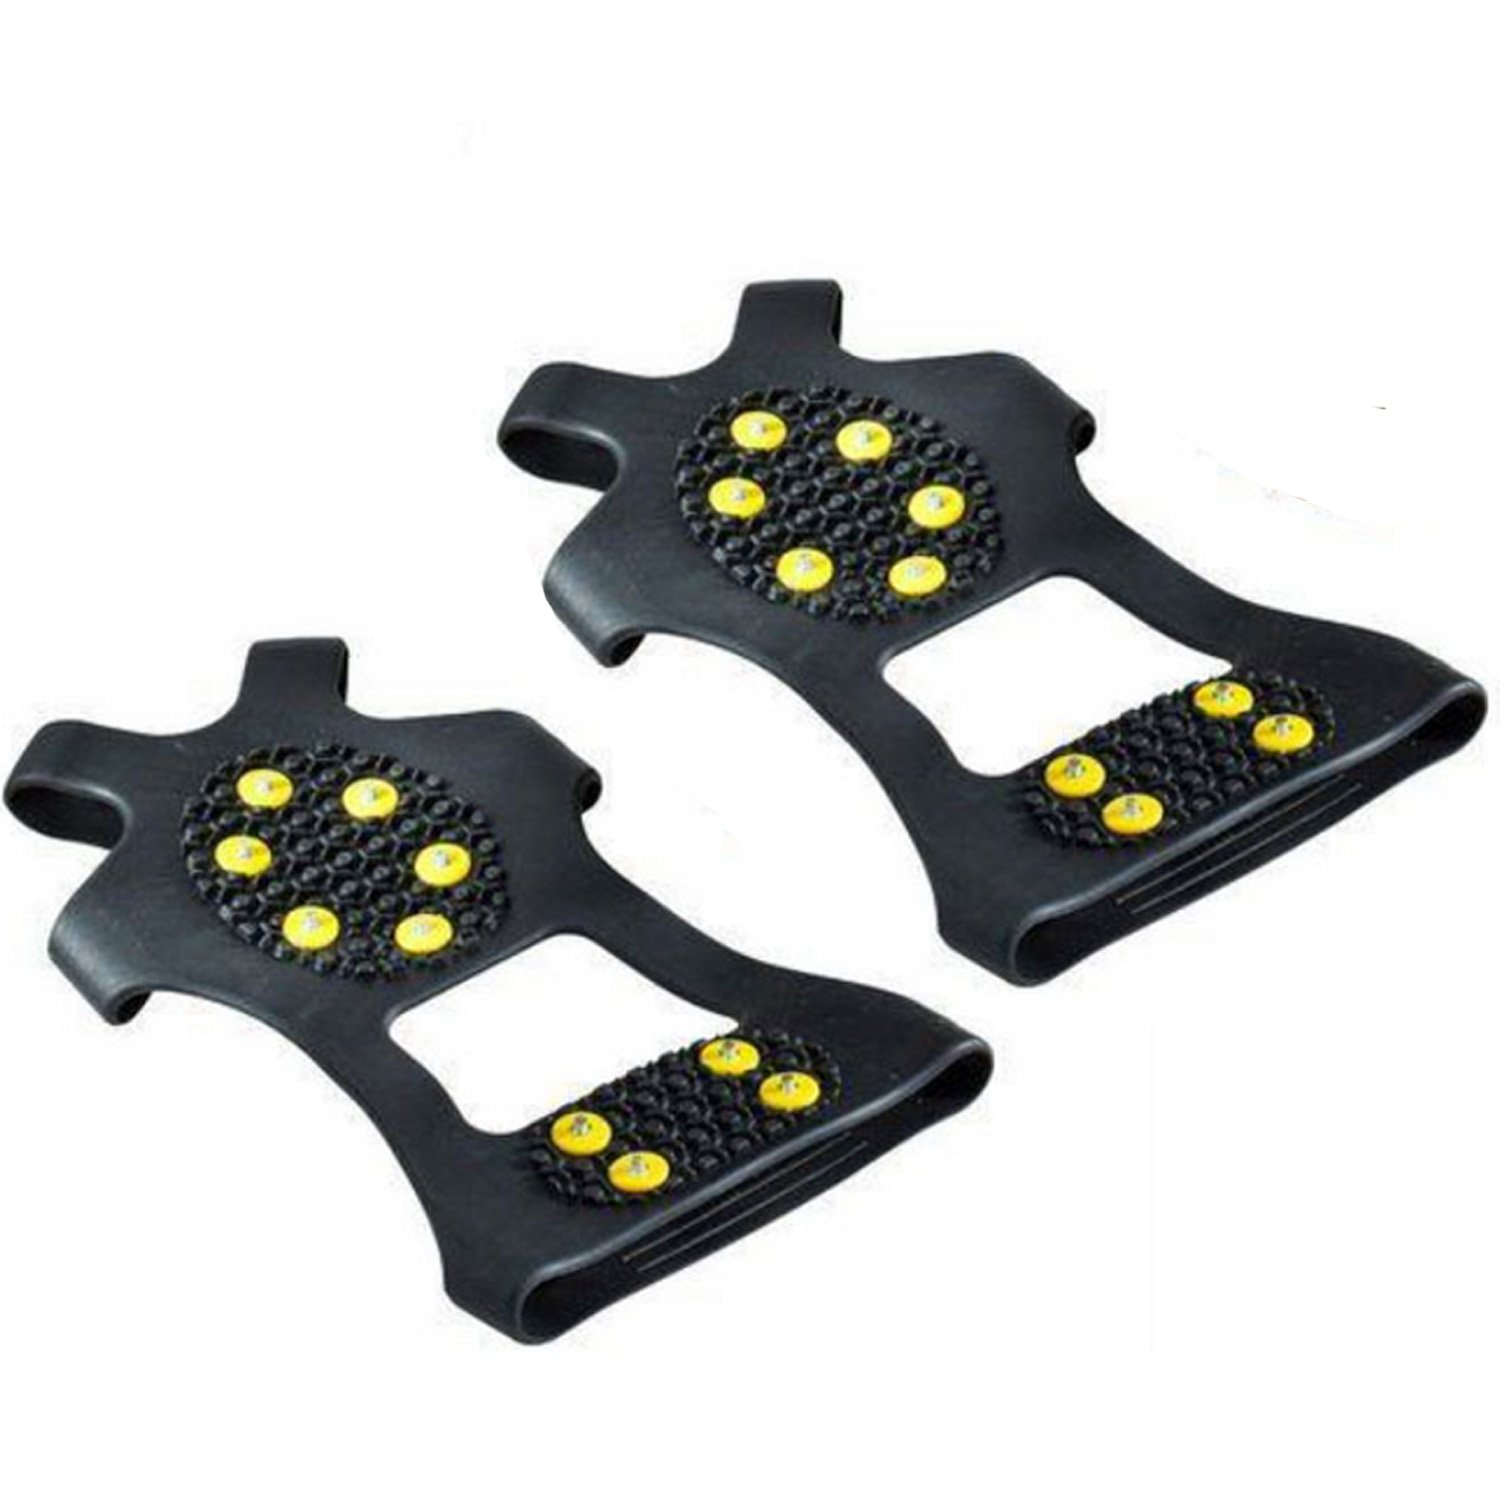 10-Stud Universal Ice Snow Cleat Grips Traction Nonskid Over Shoe Boot Footwear Crampons Studs Spikes Beetest